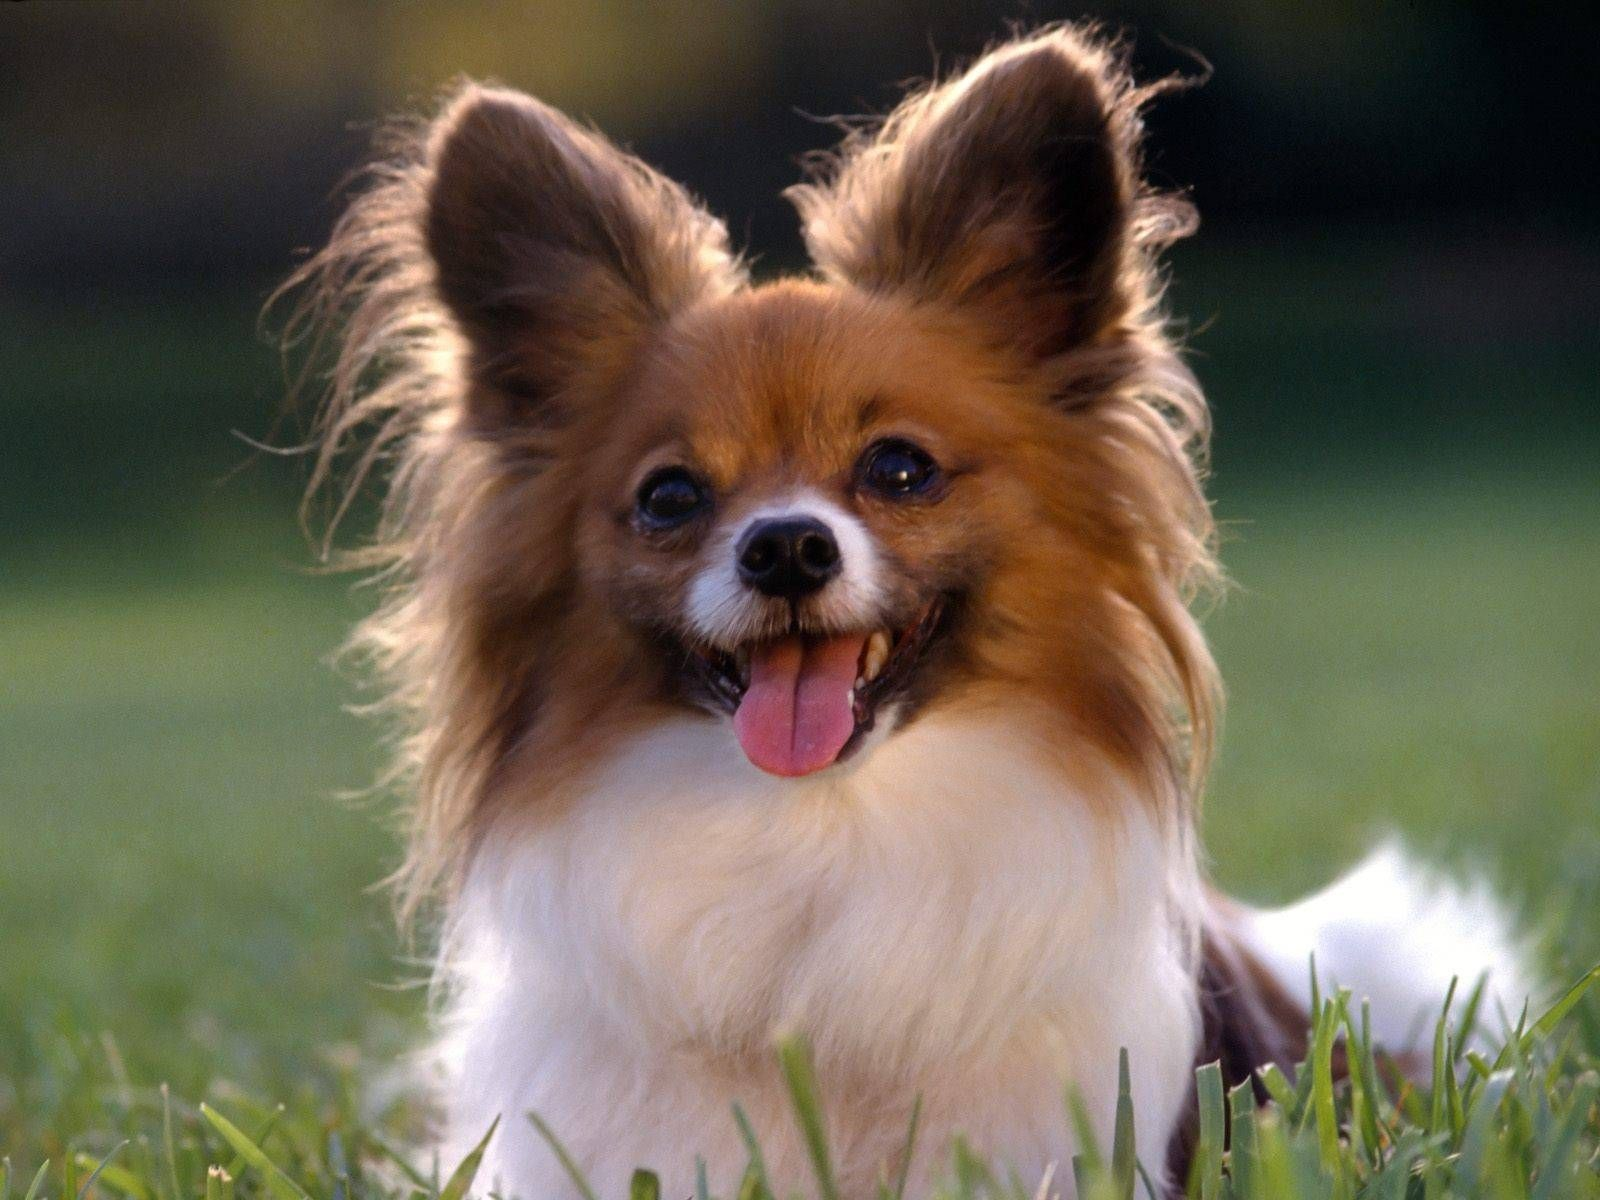 Longhaired Chihuahua Papillon Dog Cute Small Dogs Cutest Small Dog Breeds